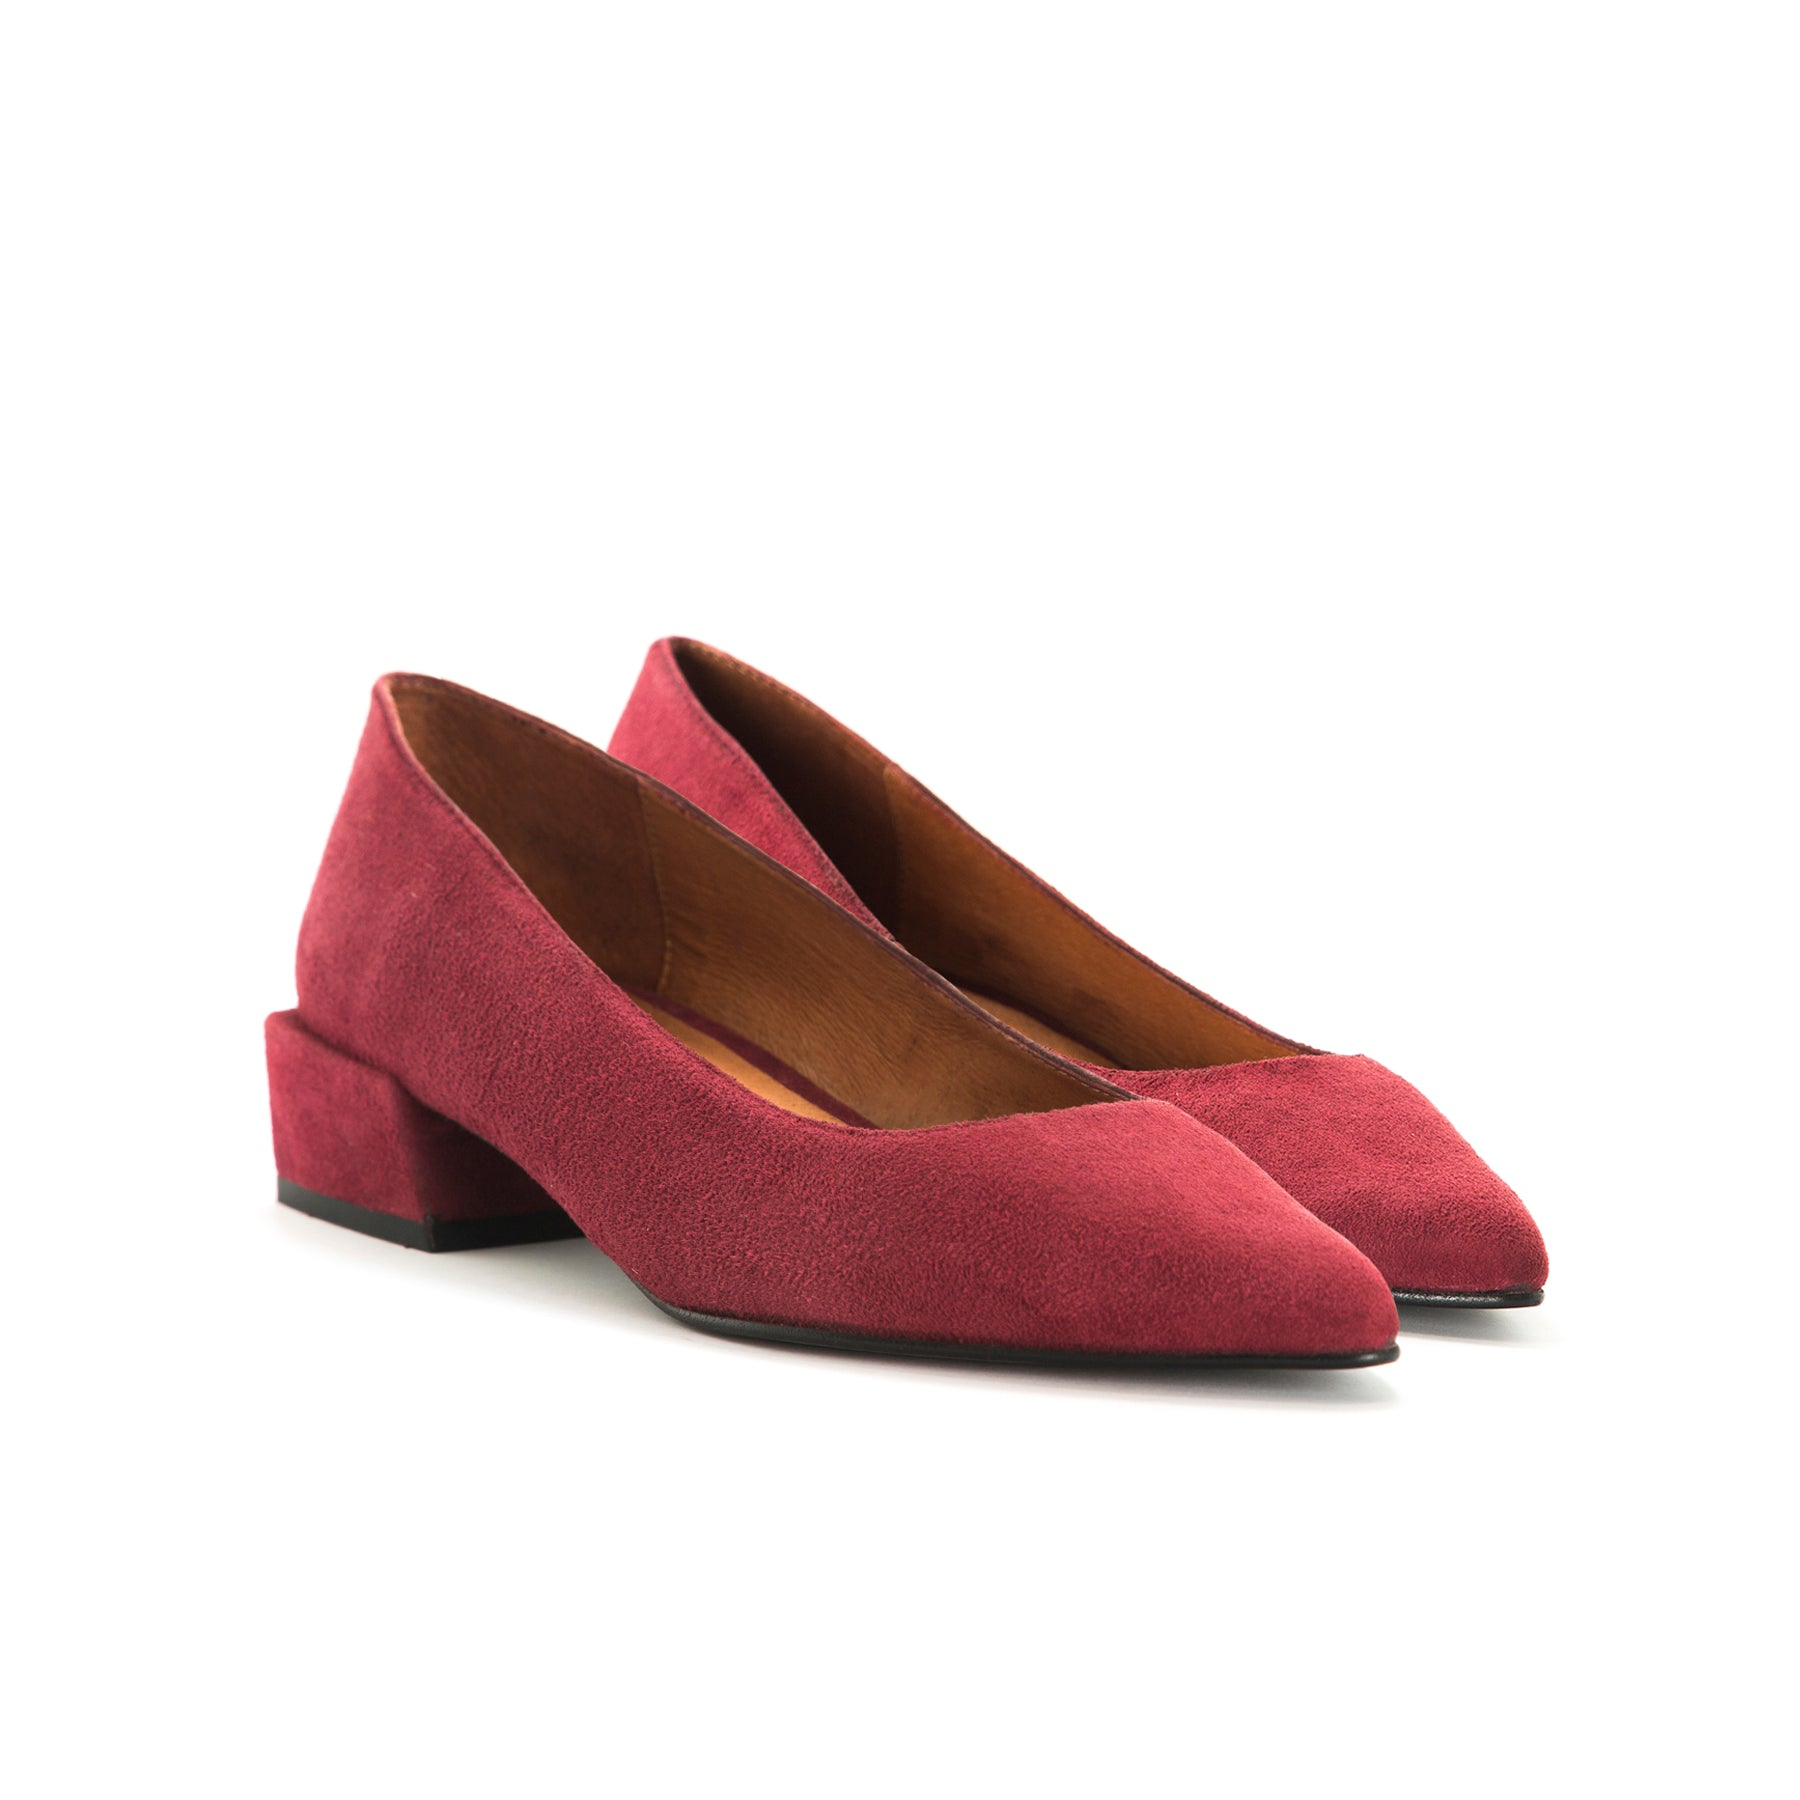 Ingrid Bordo Suede Shoes